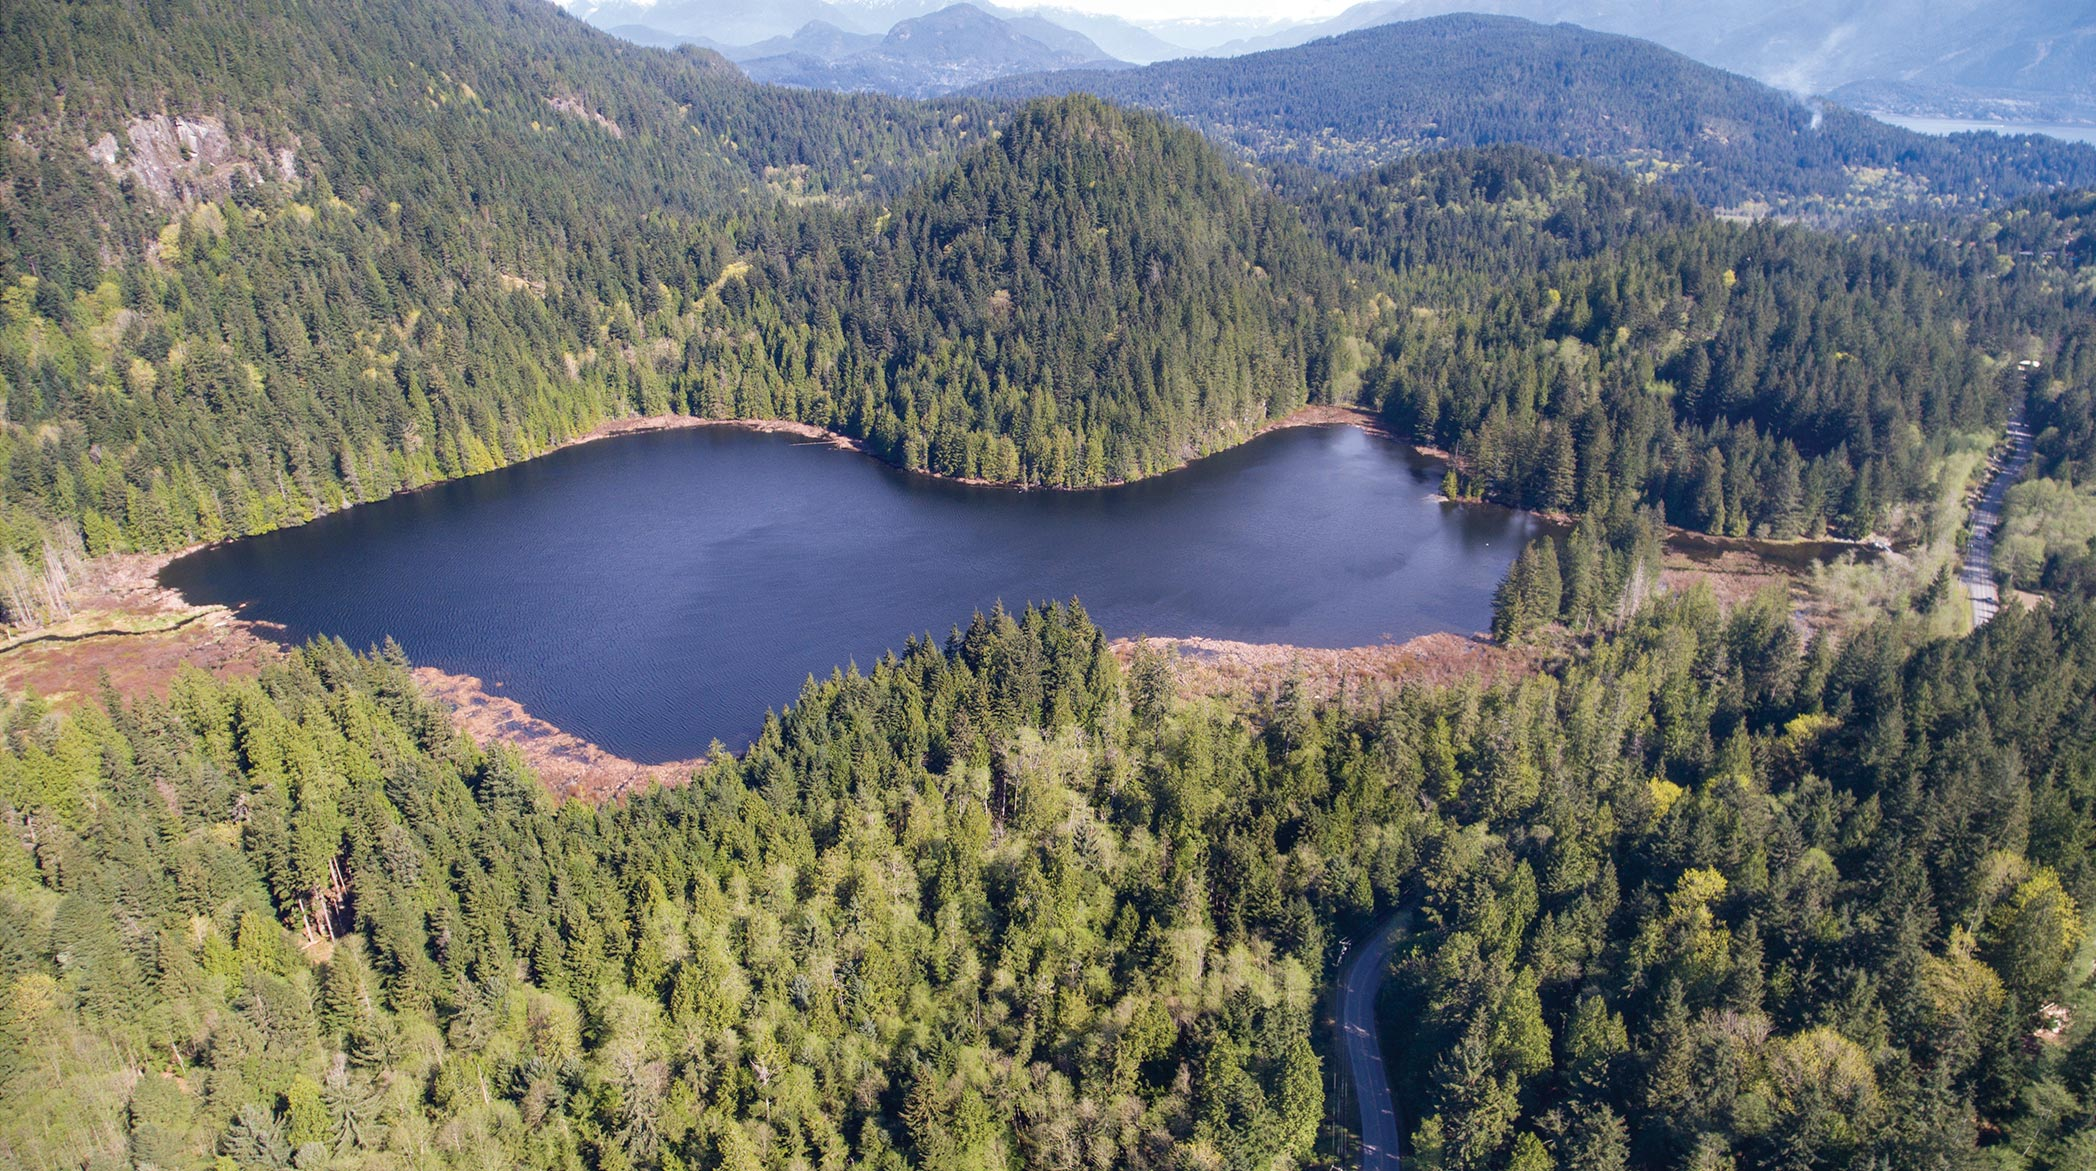 A dark blue lake set in green hills covered in coniferous rainforest.